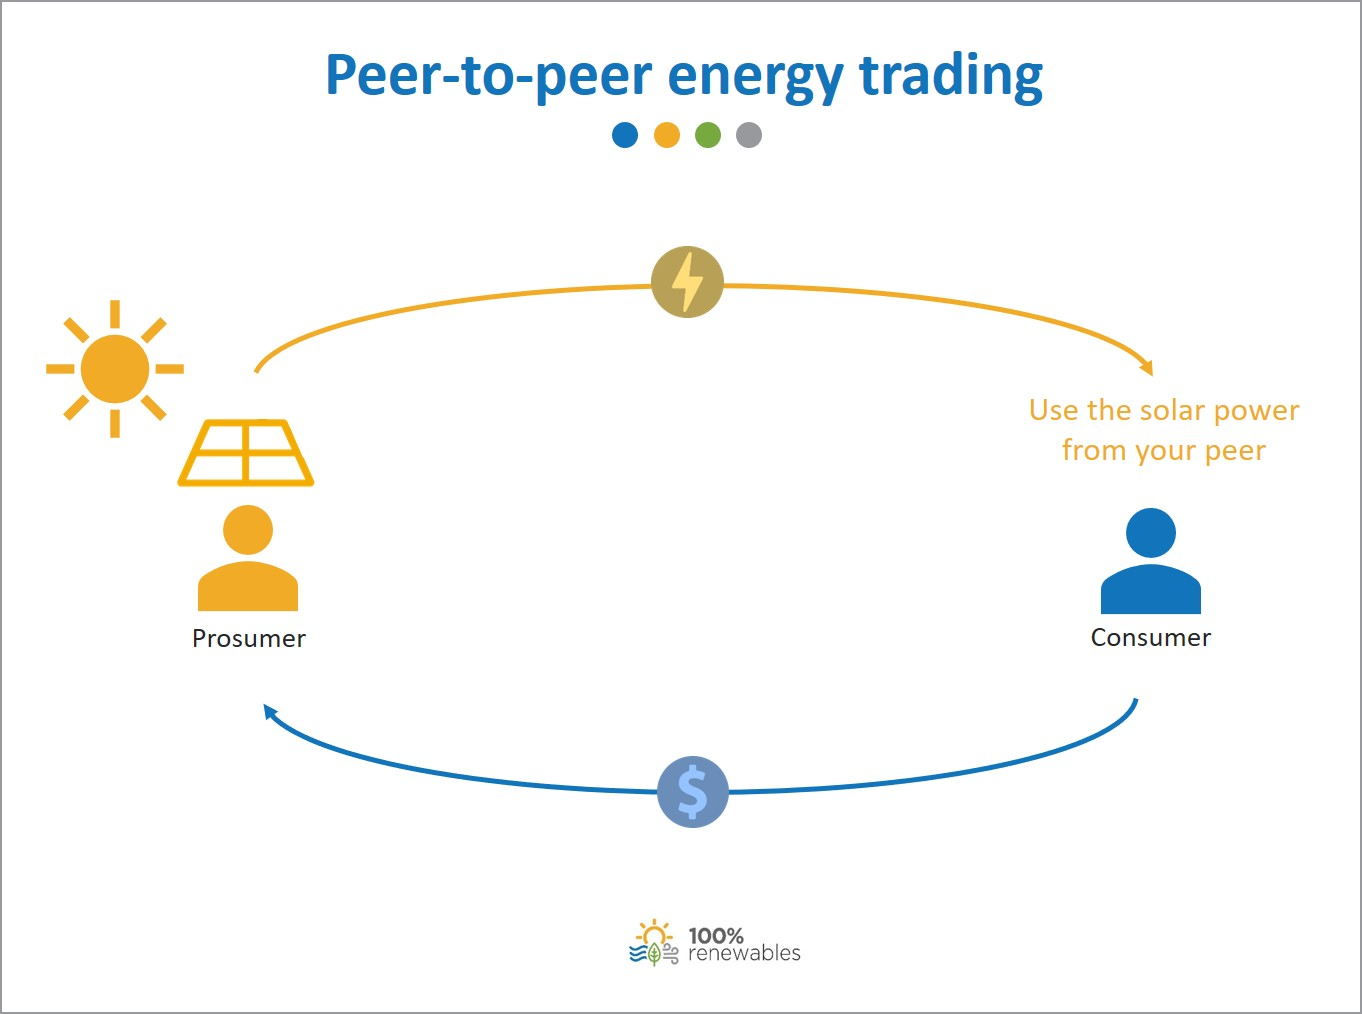 Peer-to-peer energy trading explained